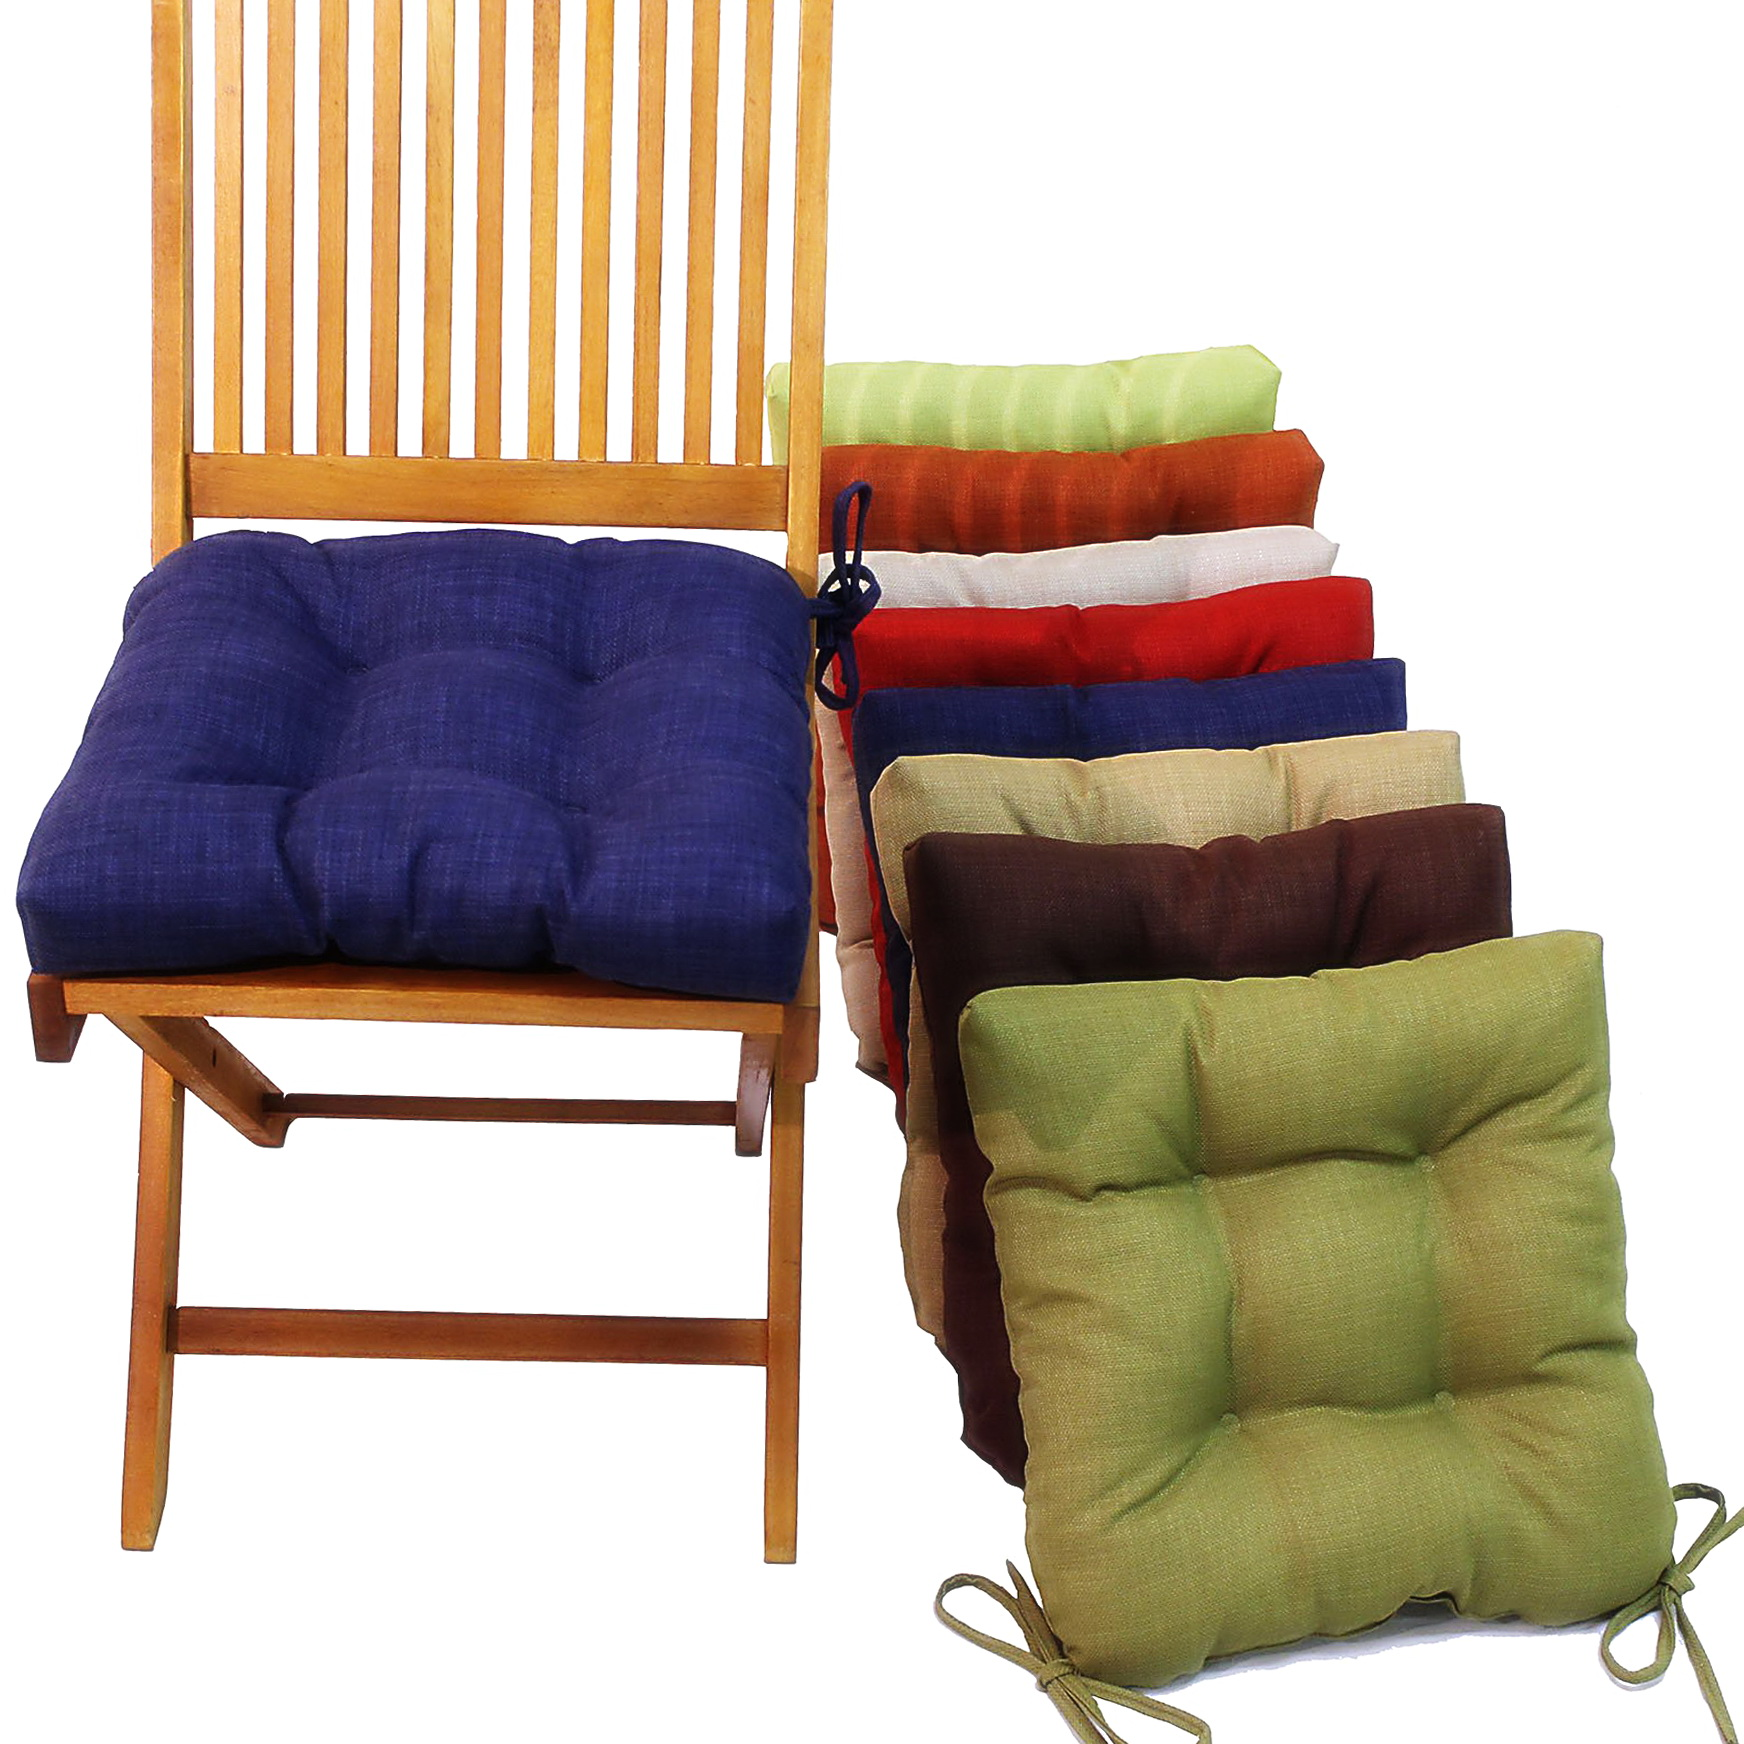 chair cushions tie on posture office manufacturer kitchen seat with ties home design ideas